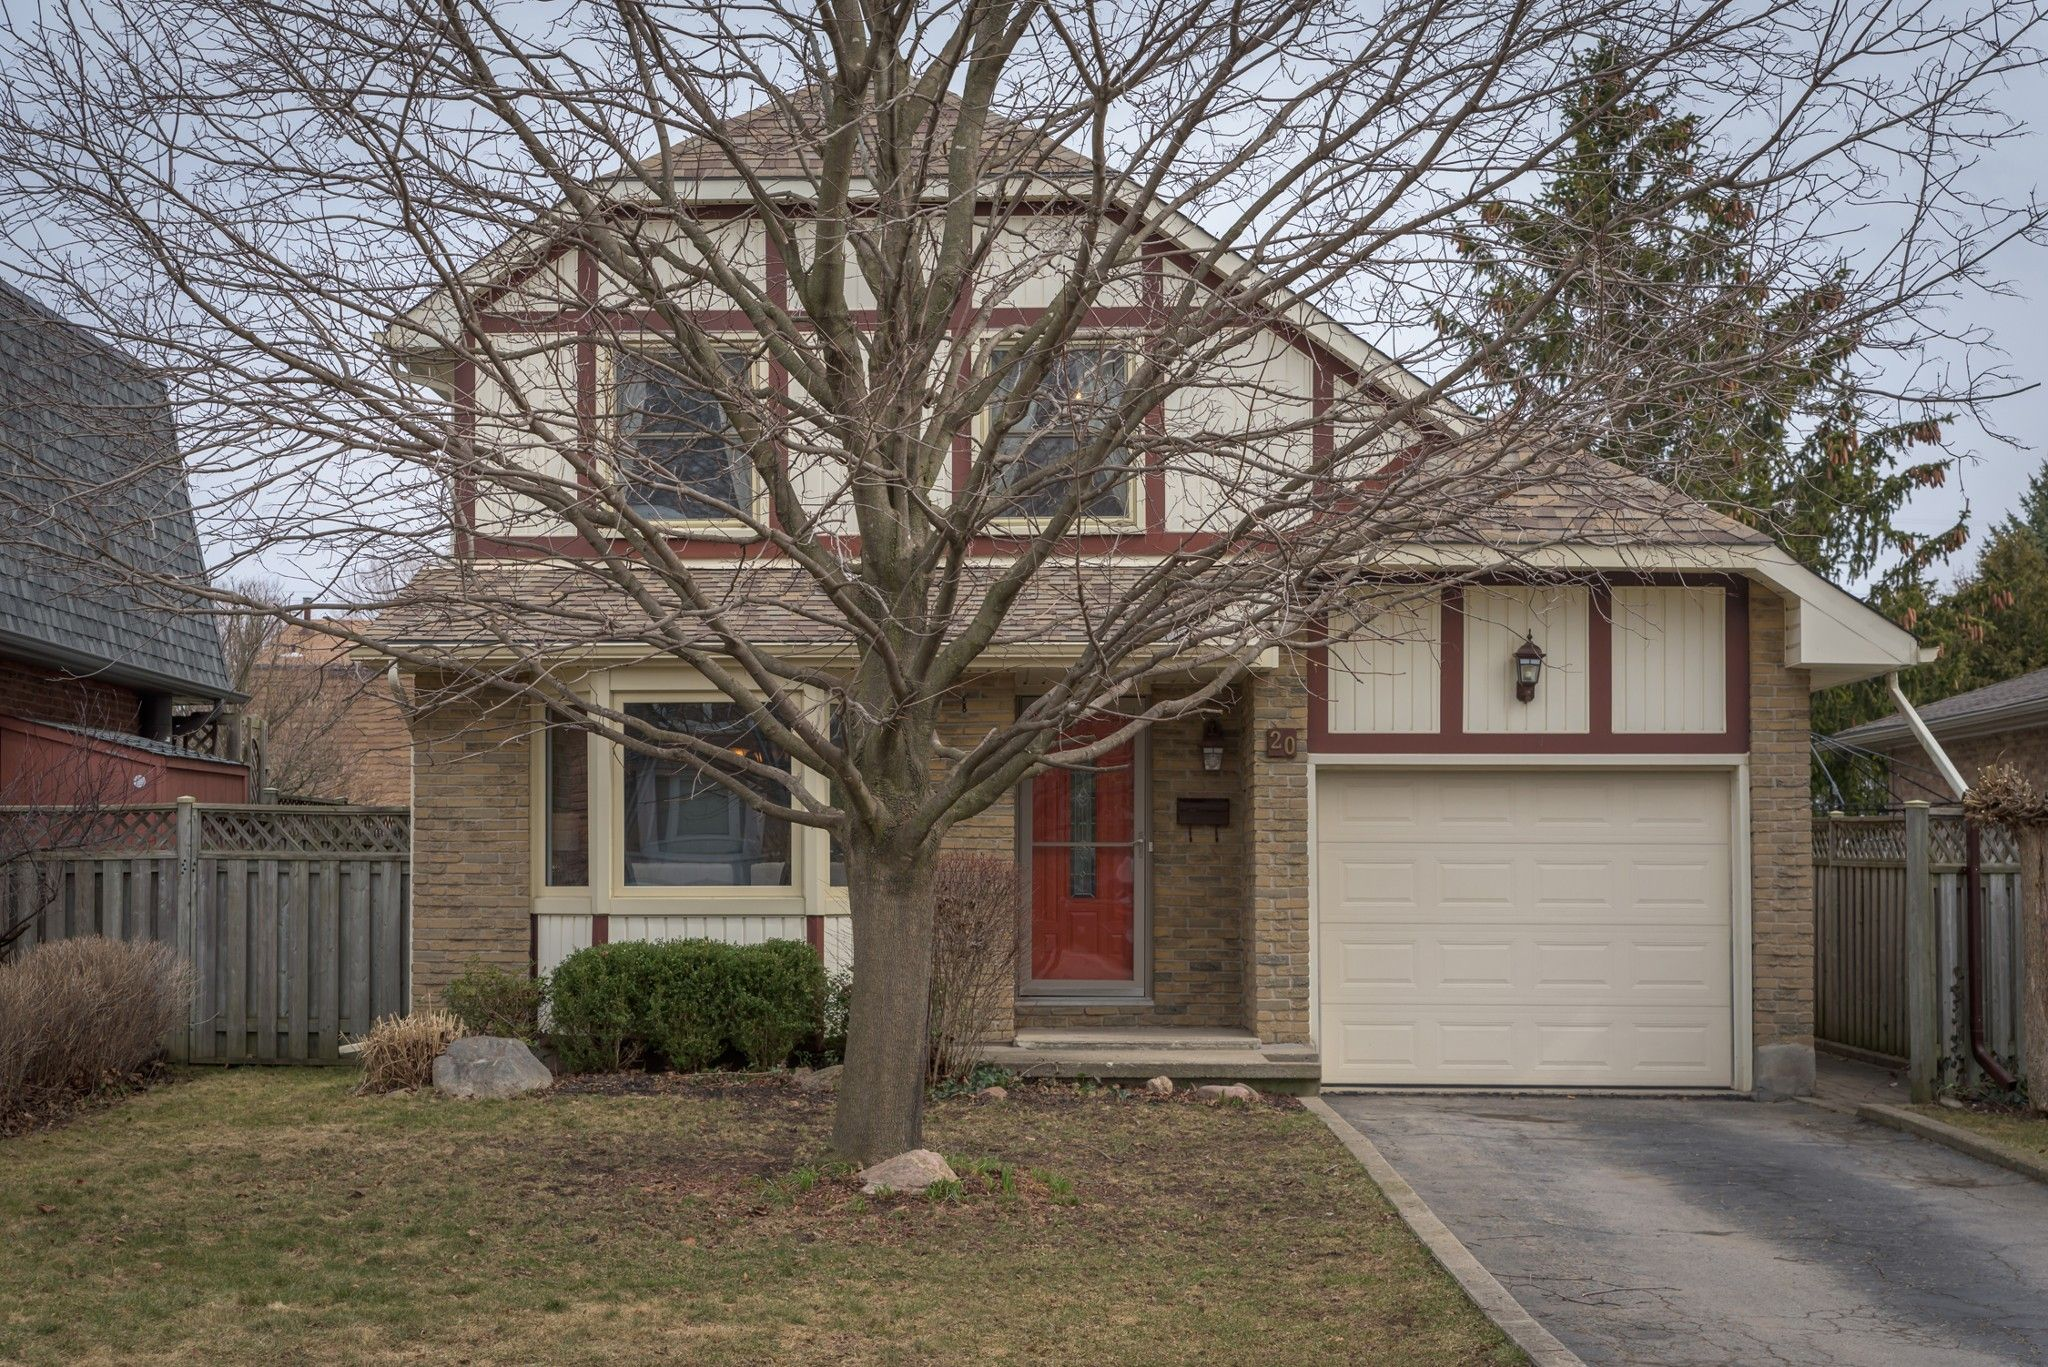 Main Photo: 20 EDMUNDS Crescent in London: Property for sale : MLS®# 251494